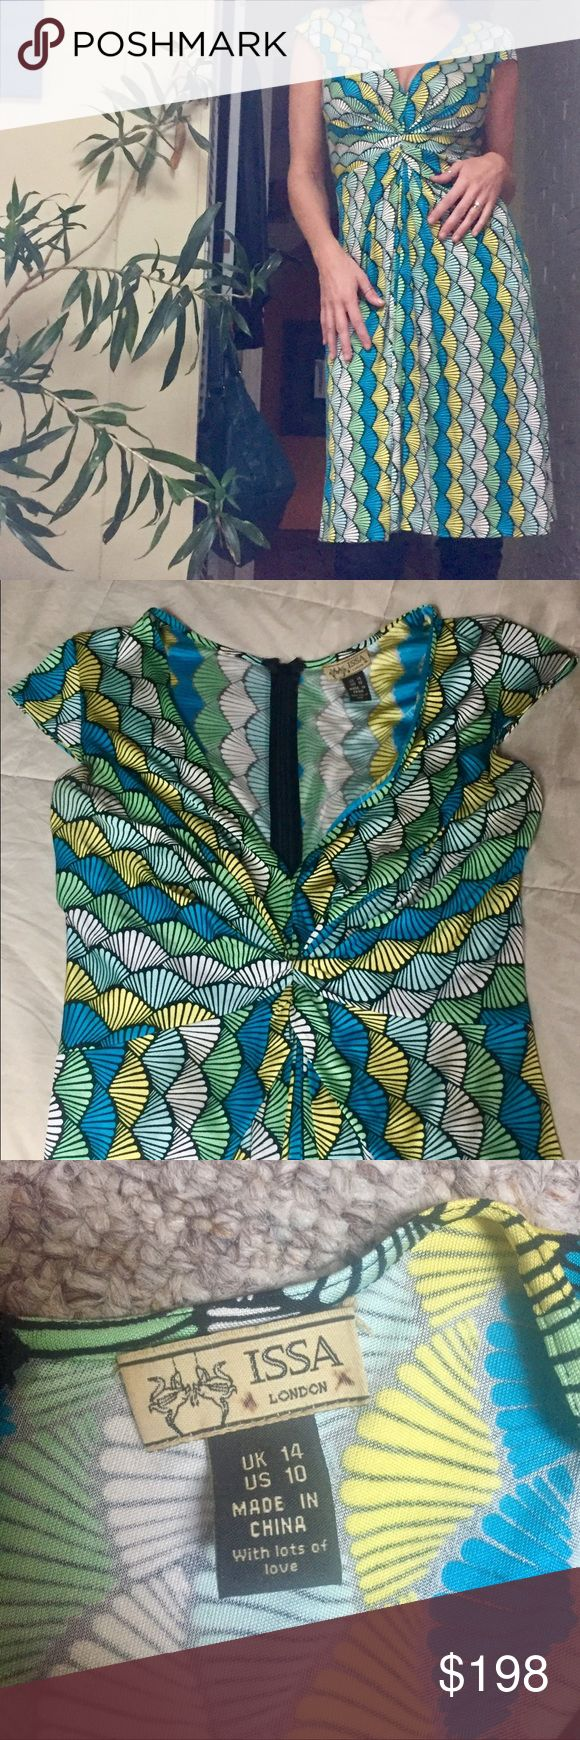 Beautiful Silk Fan Print Issa of London Dress👗 This is a gorgeous silk short sleeve knee length Issa of London silk dress with a plunging neckline. zips up the back. Feels sublime on the skin! Gorgeous aqua/blue/yellow/and black print. Has only been worn on a few occasions! Women's size 10. So feminine and flattering! Issa of London Dresses Maxi